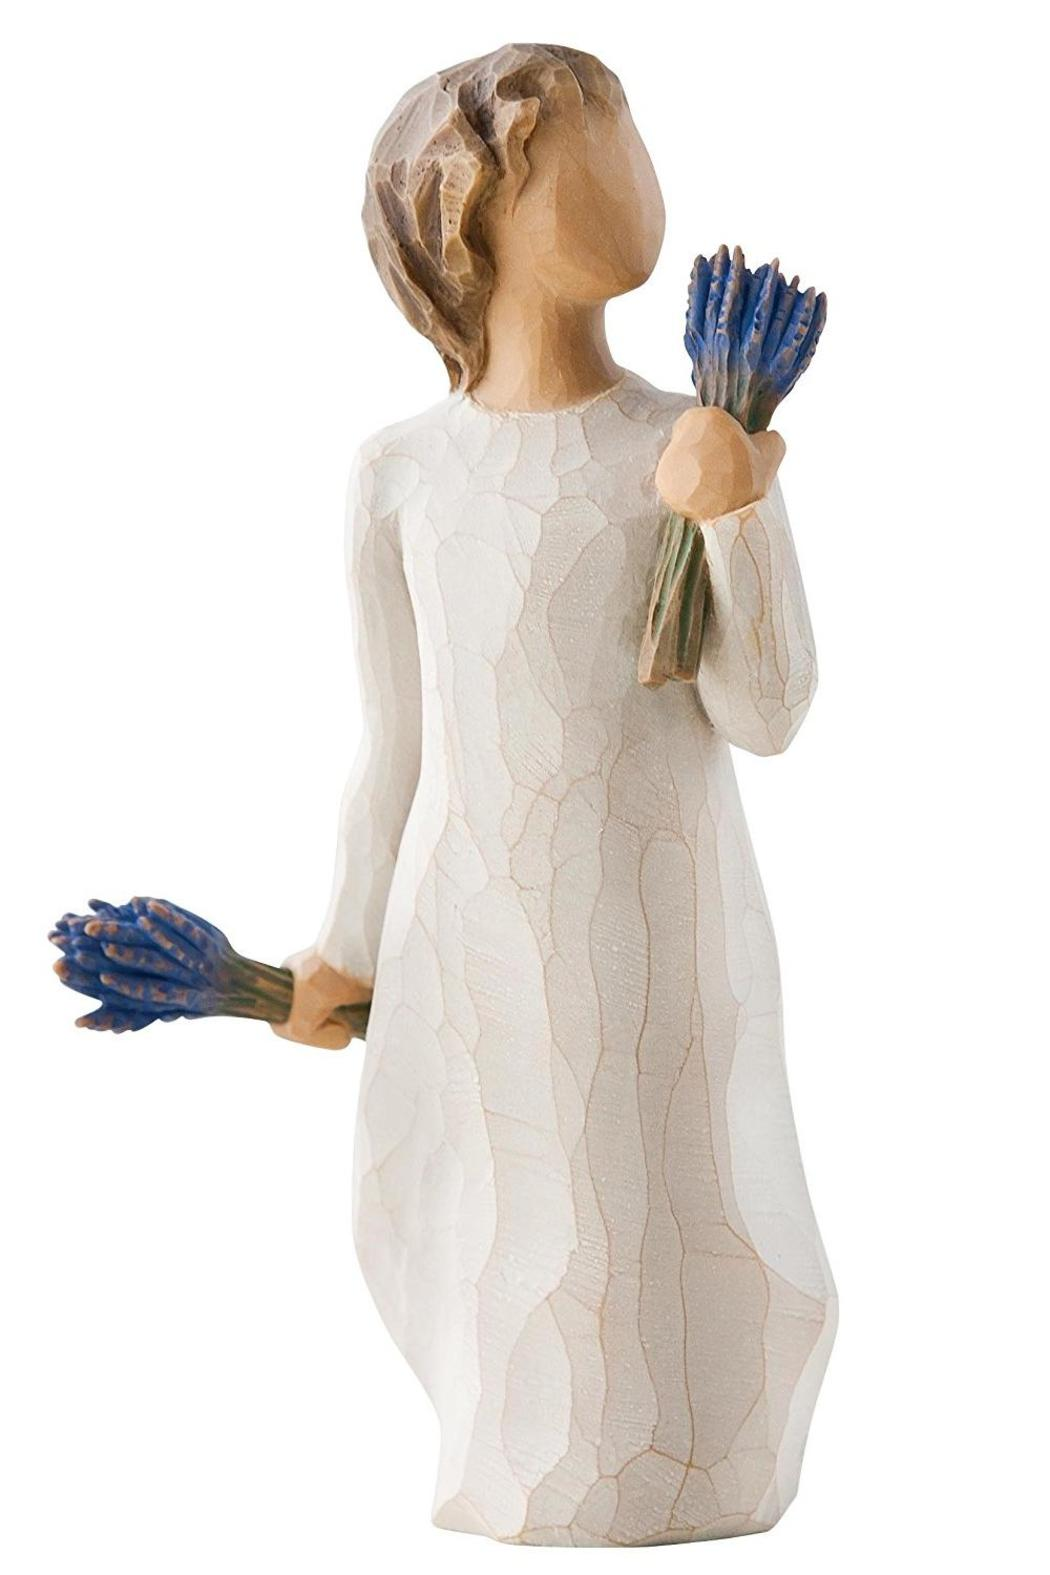 Willow Tree(r) by Susan Lordi, from DEMDACO Lavender Grace Figurine - Main Image